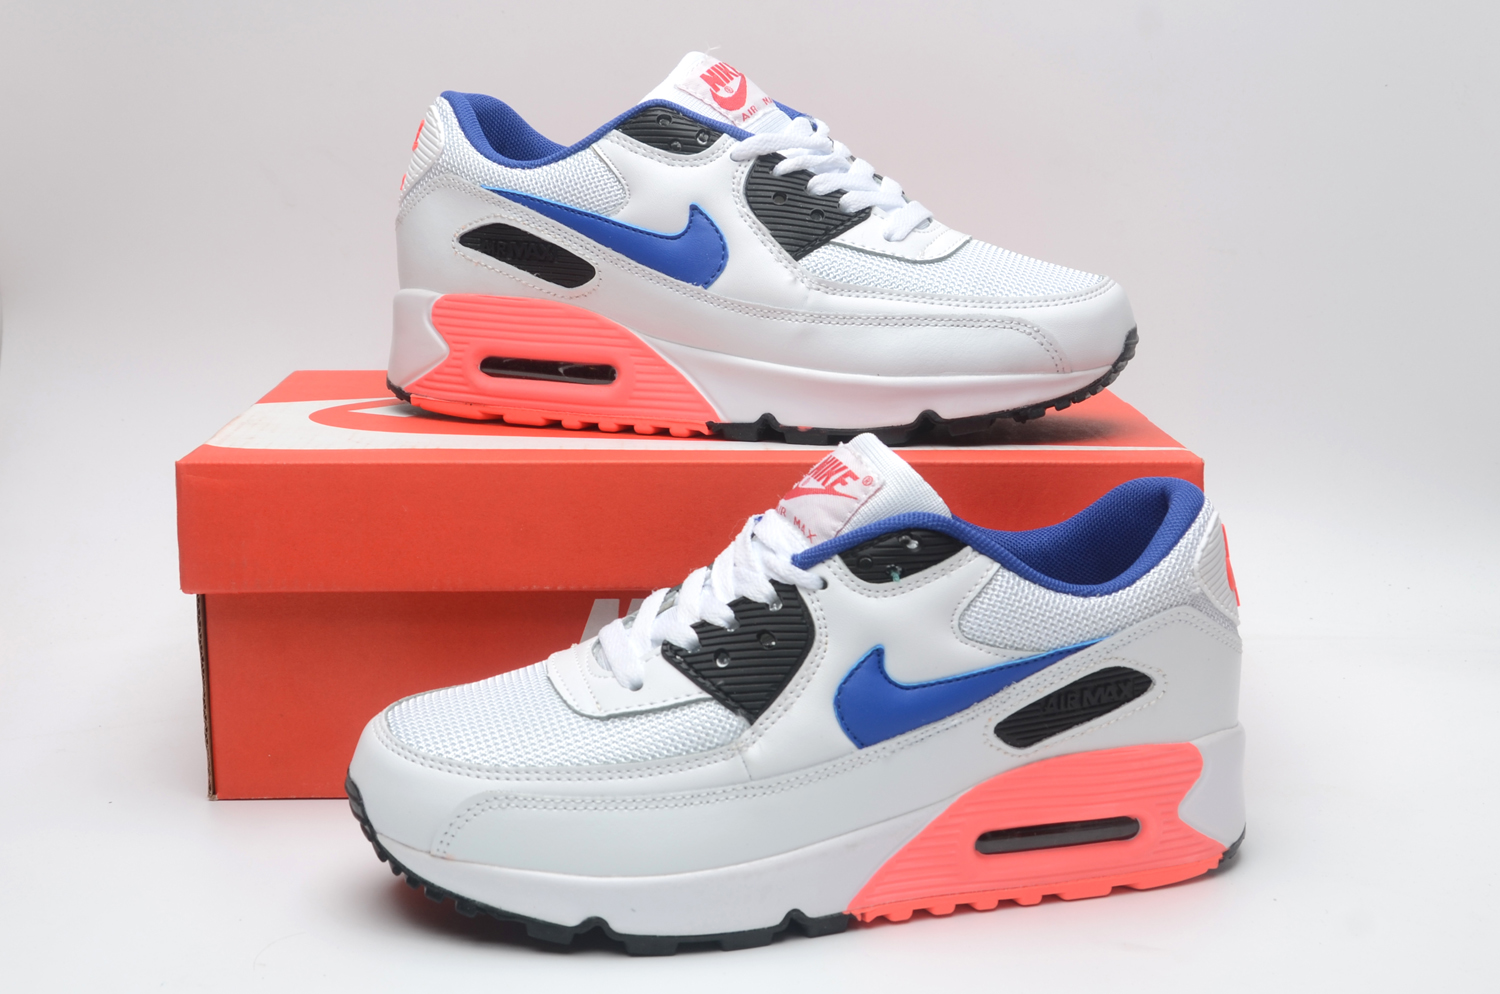 Women's Running weapon Air Max 90 Shoes 032